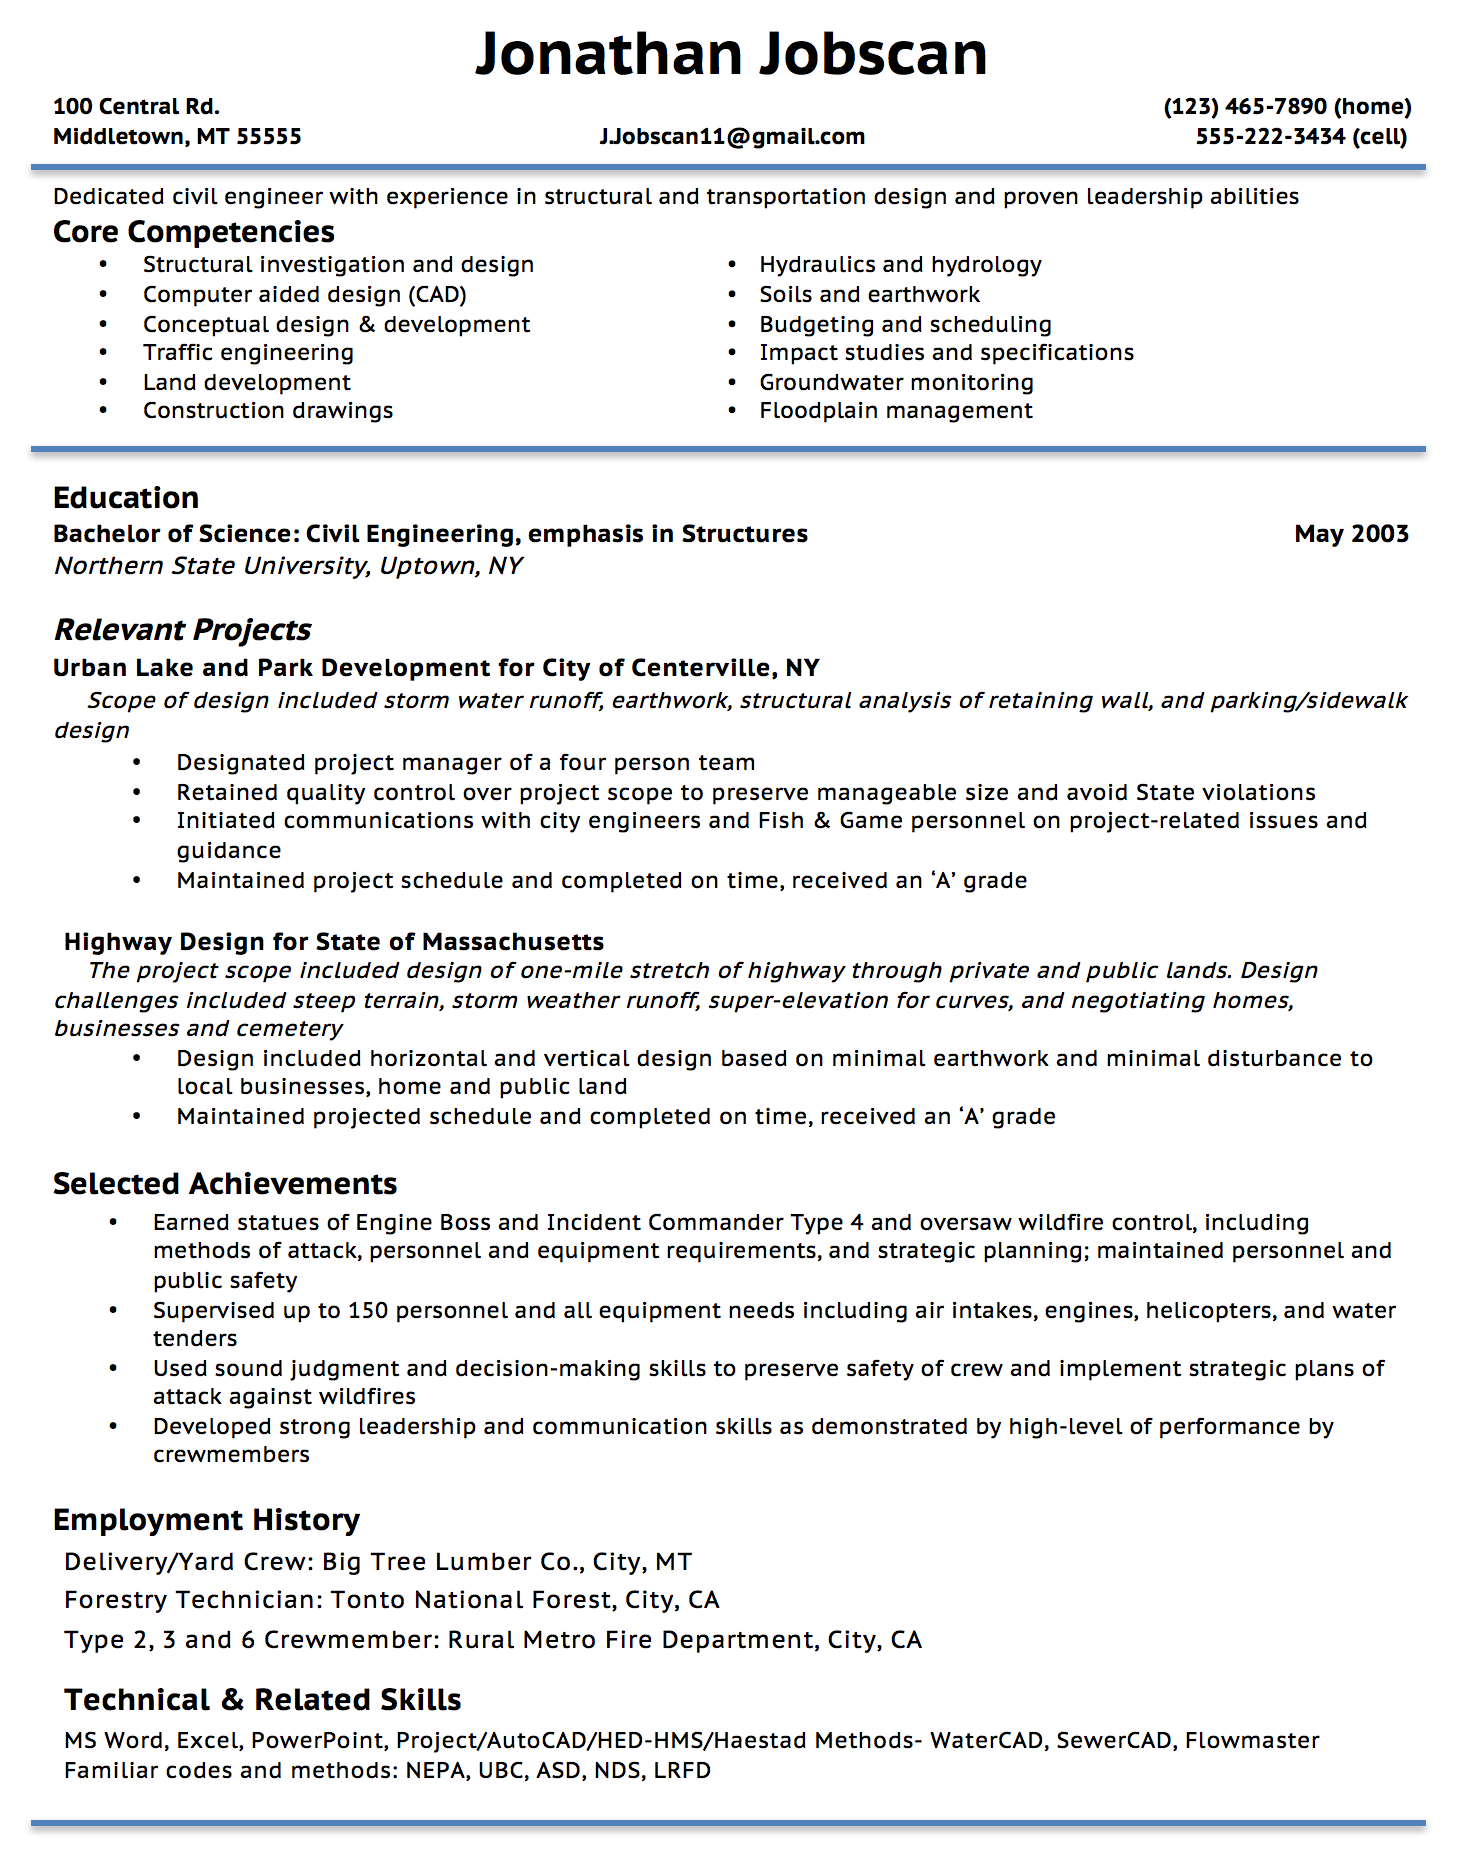 Opposenewapstandardsus  Nice Resume Writing Guide  Jobscan With Foxy Example Of A Functional Resume Format With Amazing Resume With No Education Also High School Grad Resume In Addition What Are The Different Types Of Resumes And Forklift Resume Sample As Well As Resume Example Pdf Additionally References Available Upon Request Resume From Jobscanco With Opposenewapstandardsus  Foxy Resume Writing Guide  Jobscan With Amazing Example Of A Functional Resume Format And Nice Resume With No Education Also High School Grad Resume In Addition What Are The Different Types Of Resumes From Jobscanco